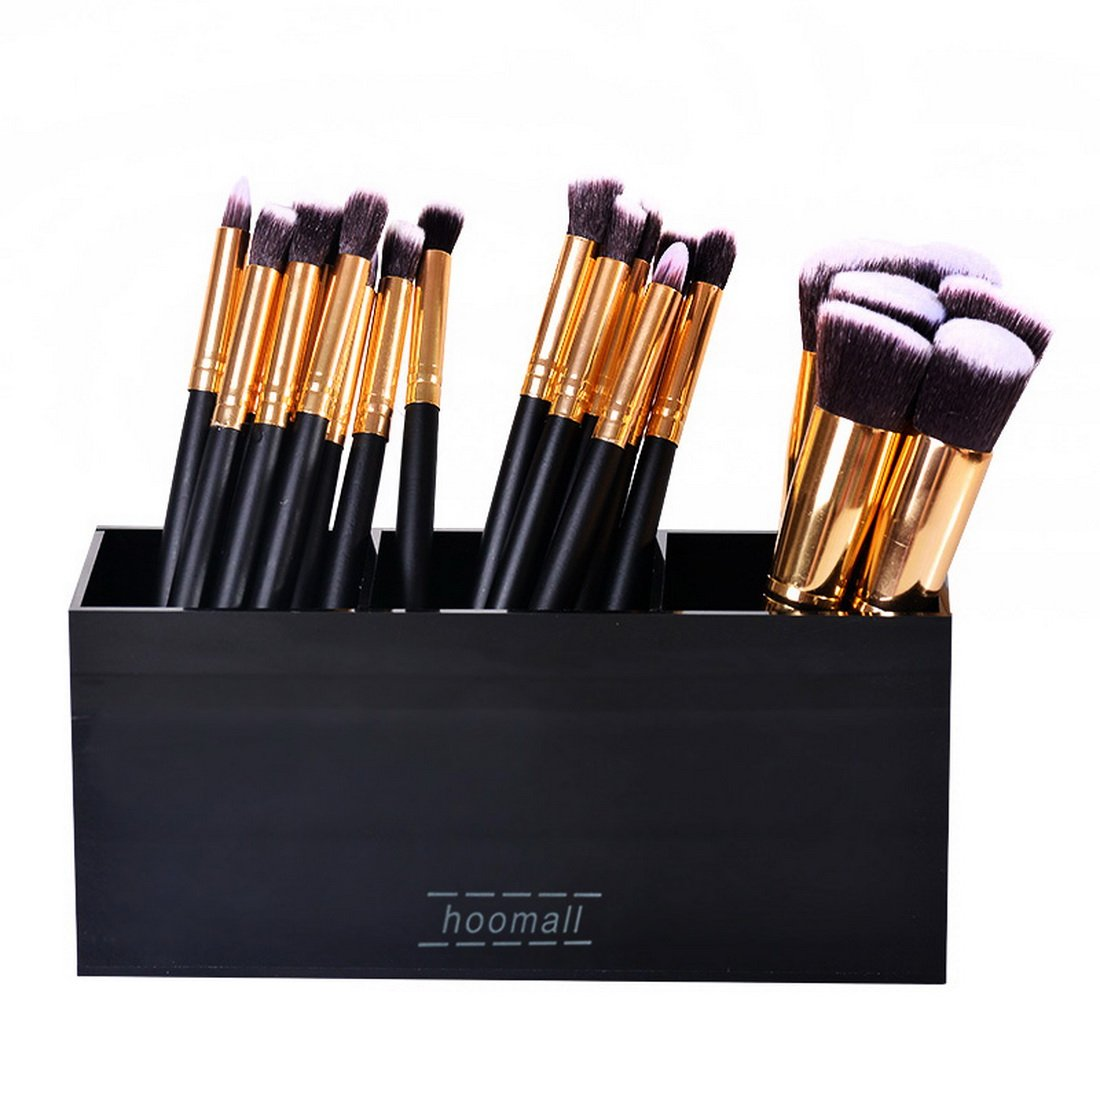 hoomall black acrylic makeup brush holder organizer 3 slot cosmetics brushes ebay. Black Bedroom Furniture Sets. Home Design Ideas